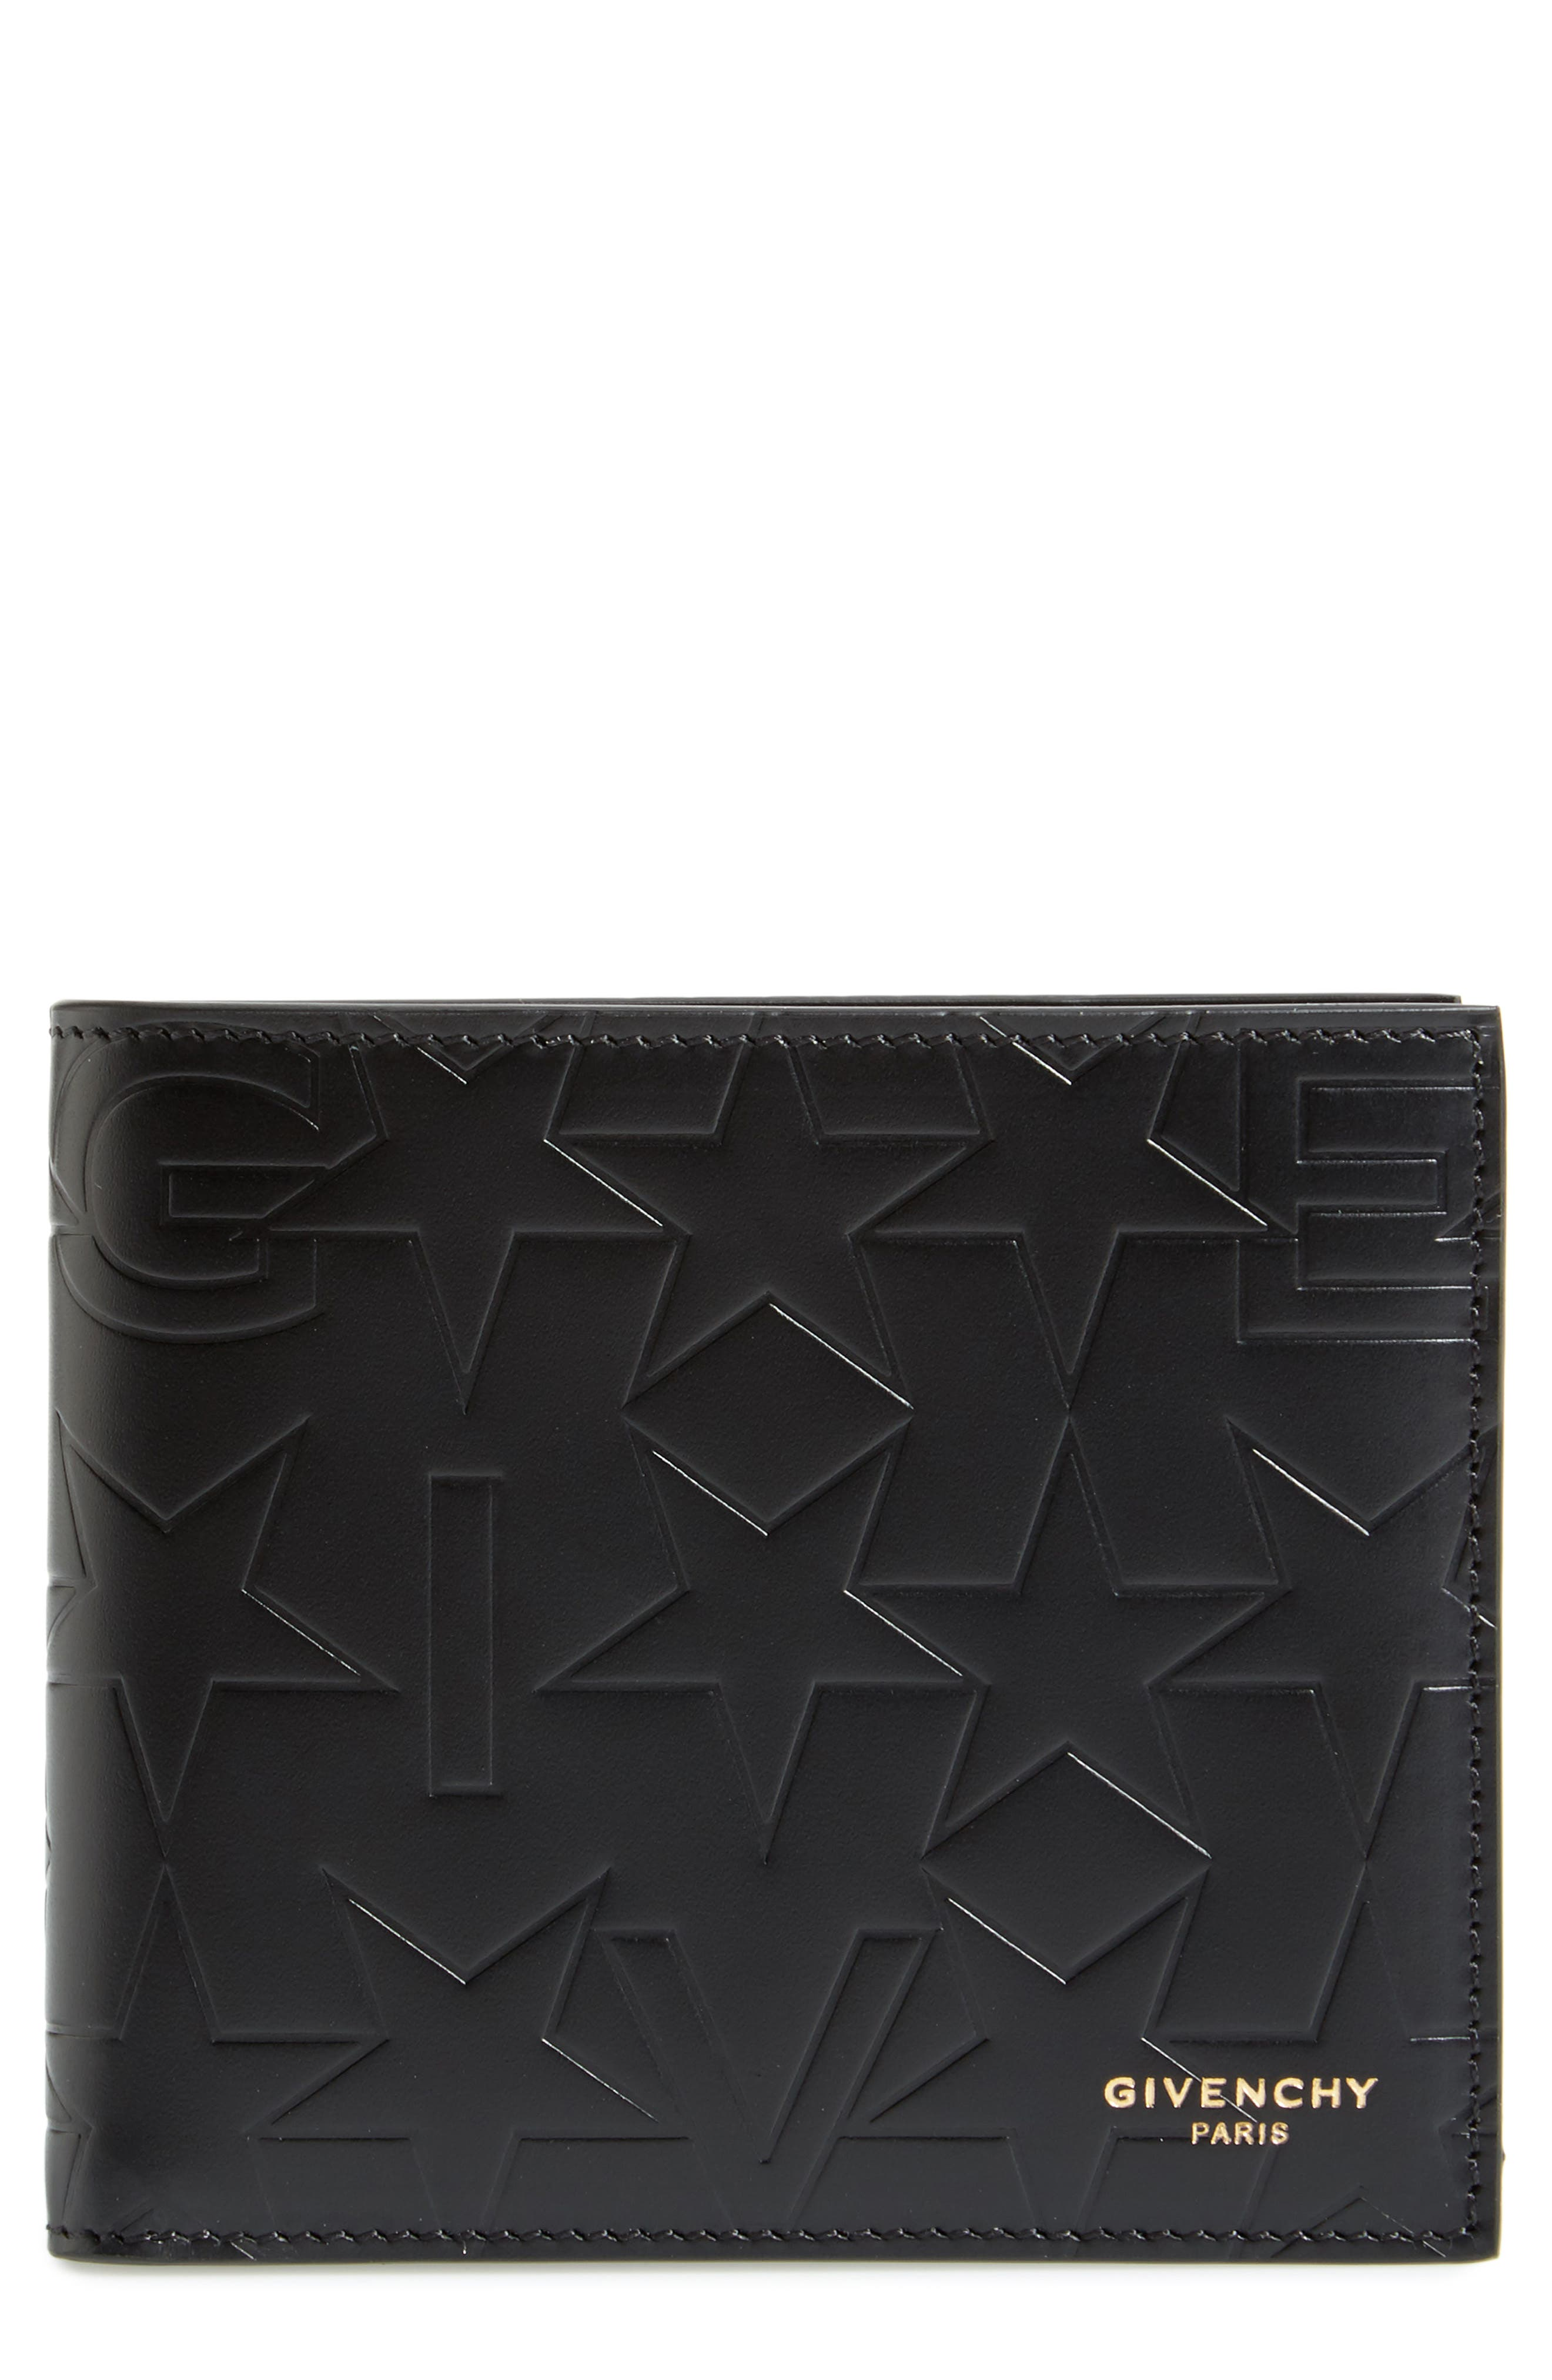 Leather Billfold Wallet,                             Main thumbnail 1, color,                             001